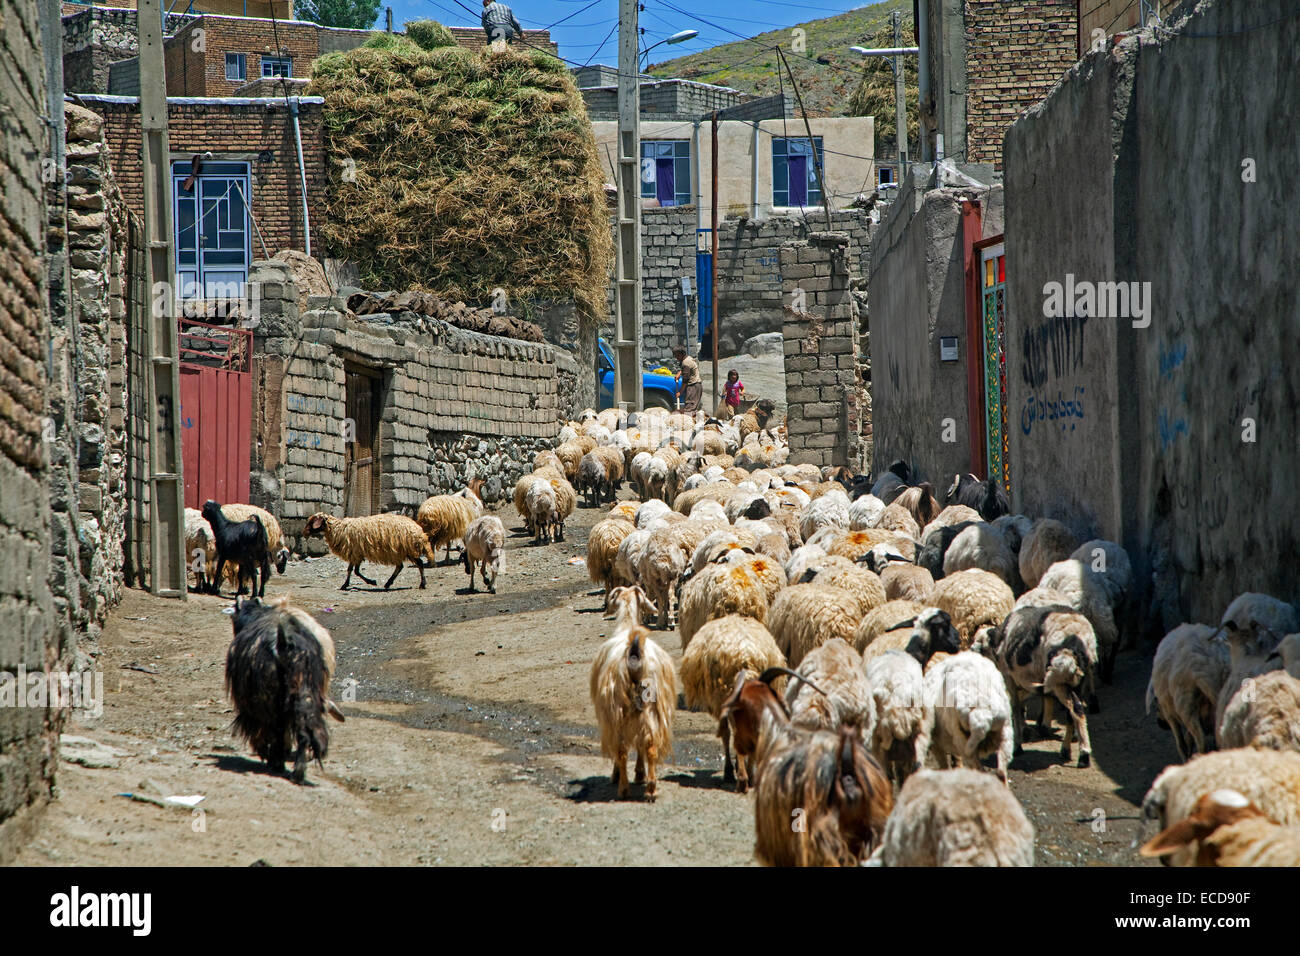 Flock of sheep in street of the dusty, small border town Qotur, West Azerbaijan, Iran - Stock Image